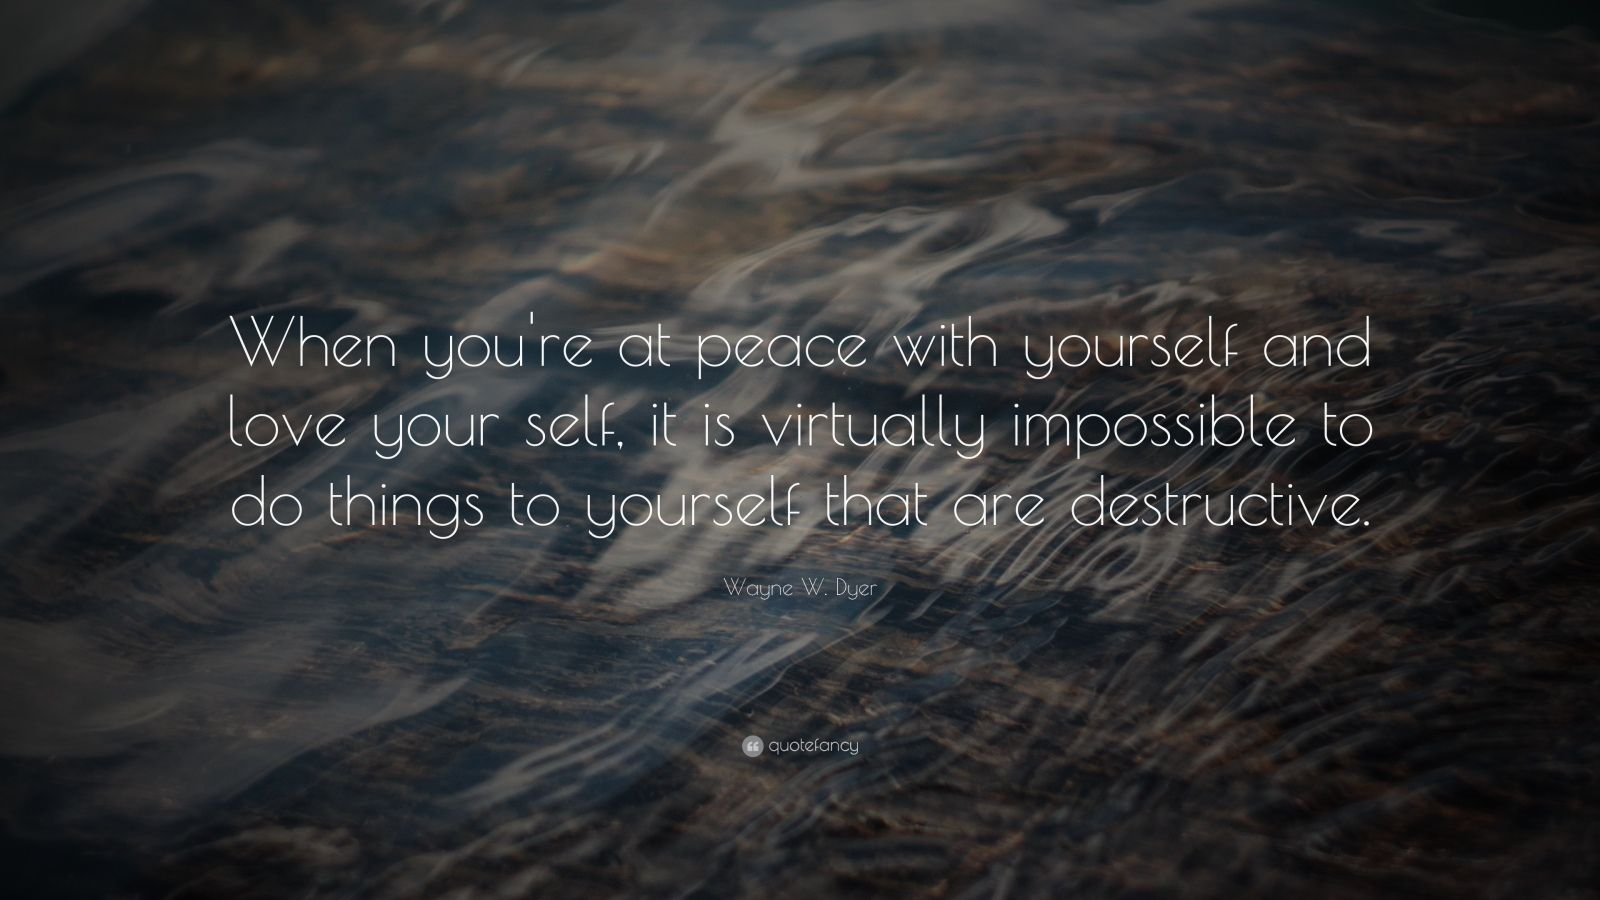 """Wayne W. Dyer Quote: """"When you're at peace with yourself and love your self, it is virtually impossible to do things to yourself that are destructive."""""""